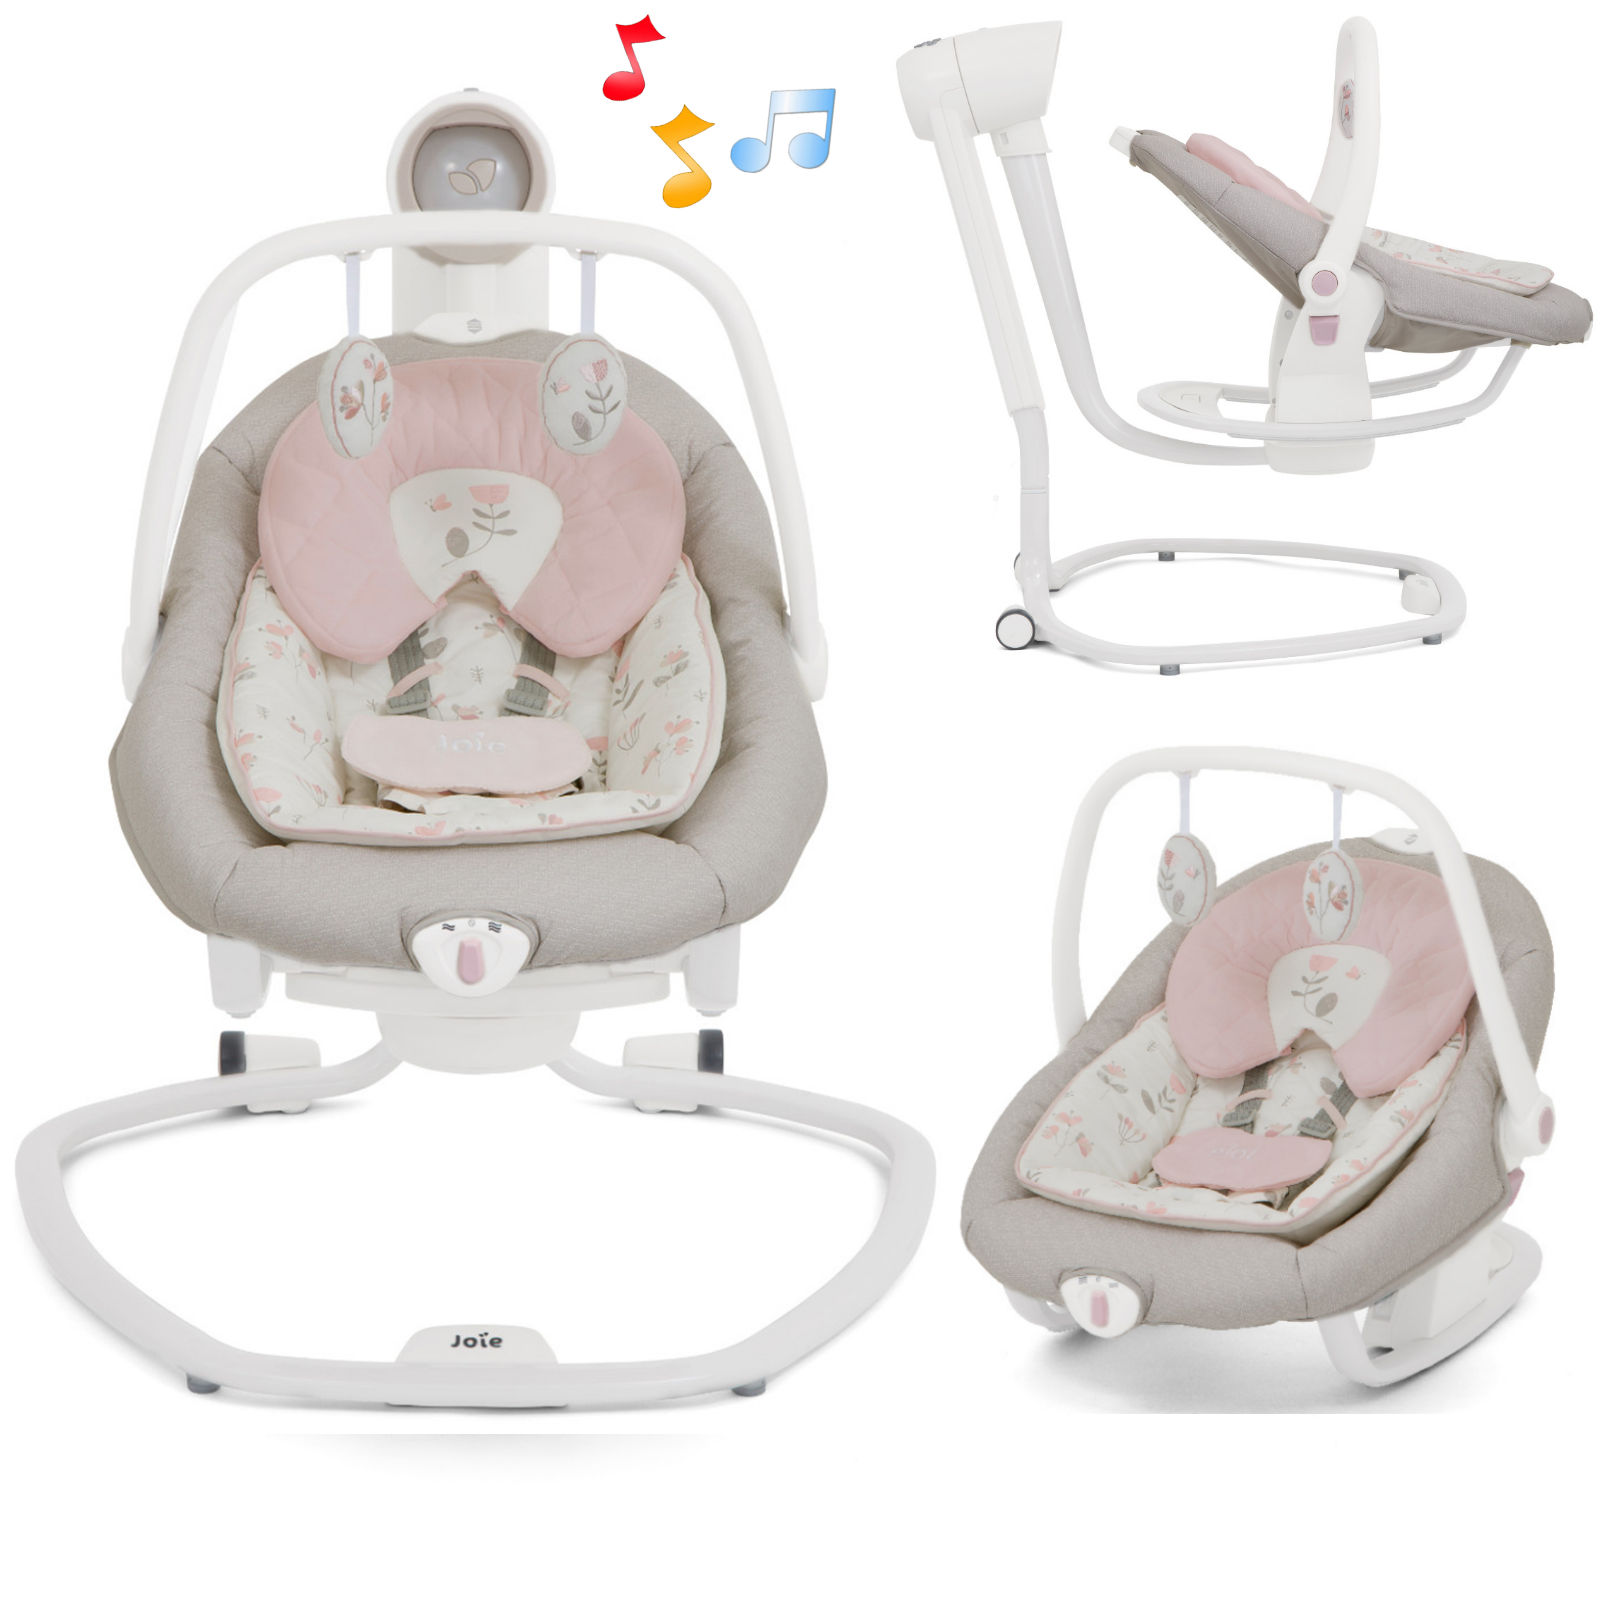 Joie Baby Swing Rocker Joie Serina 2in1 Swing Rocker Forever Flowers Buy At